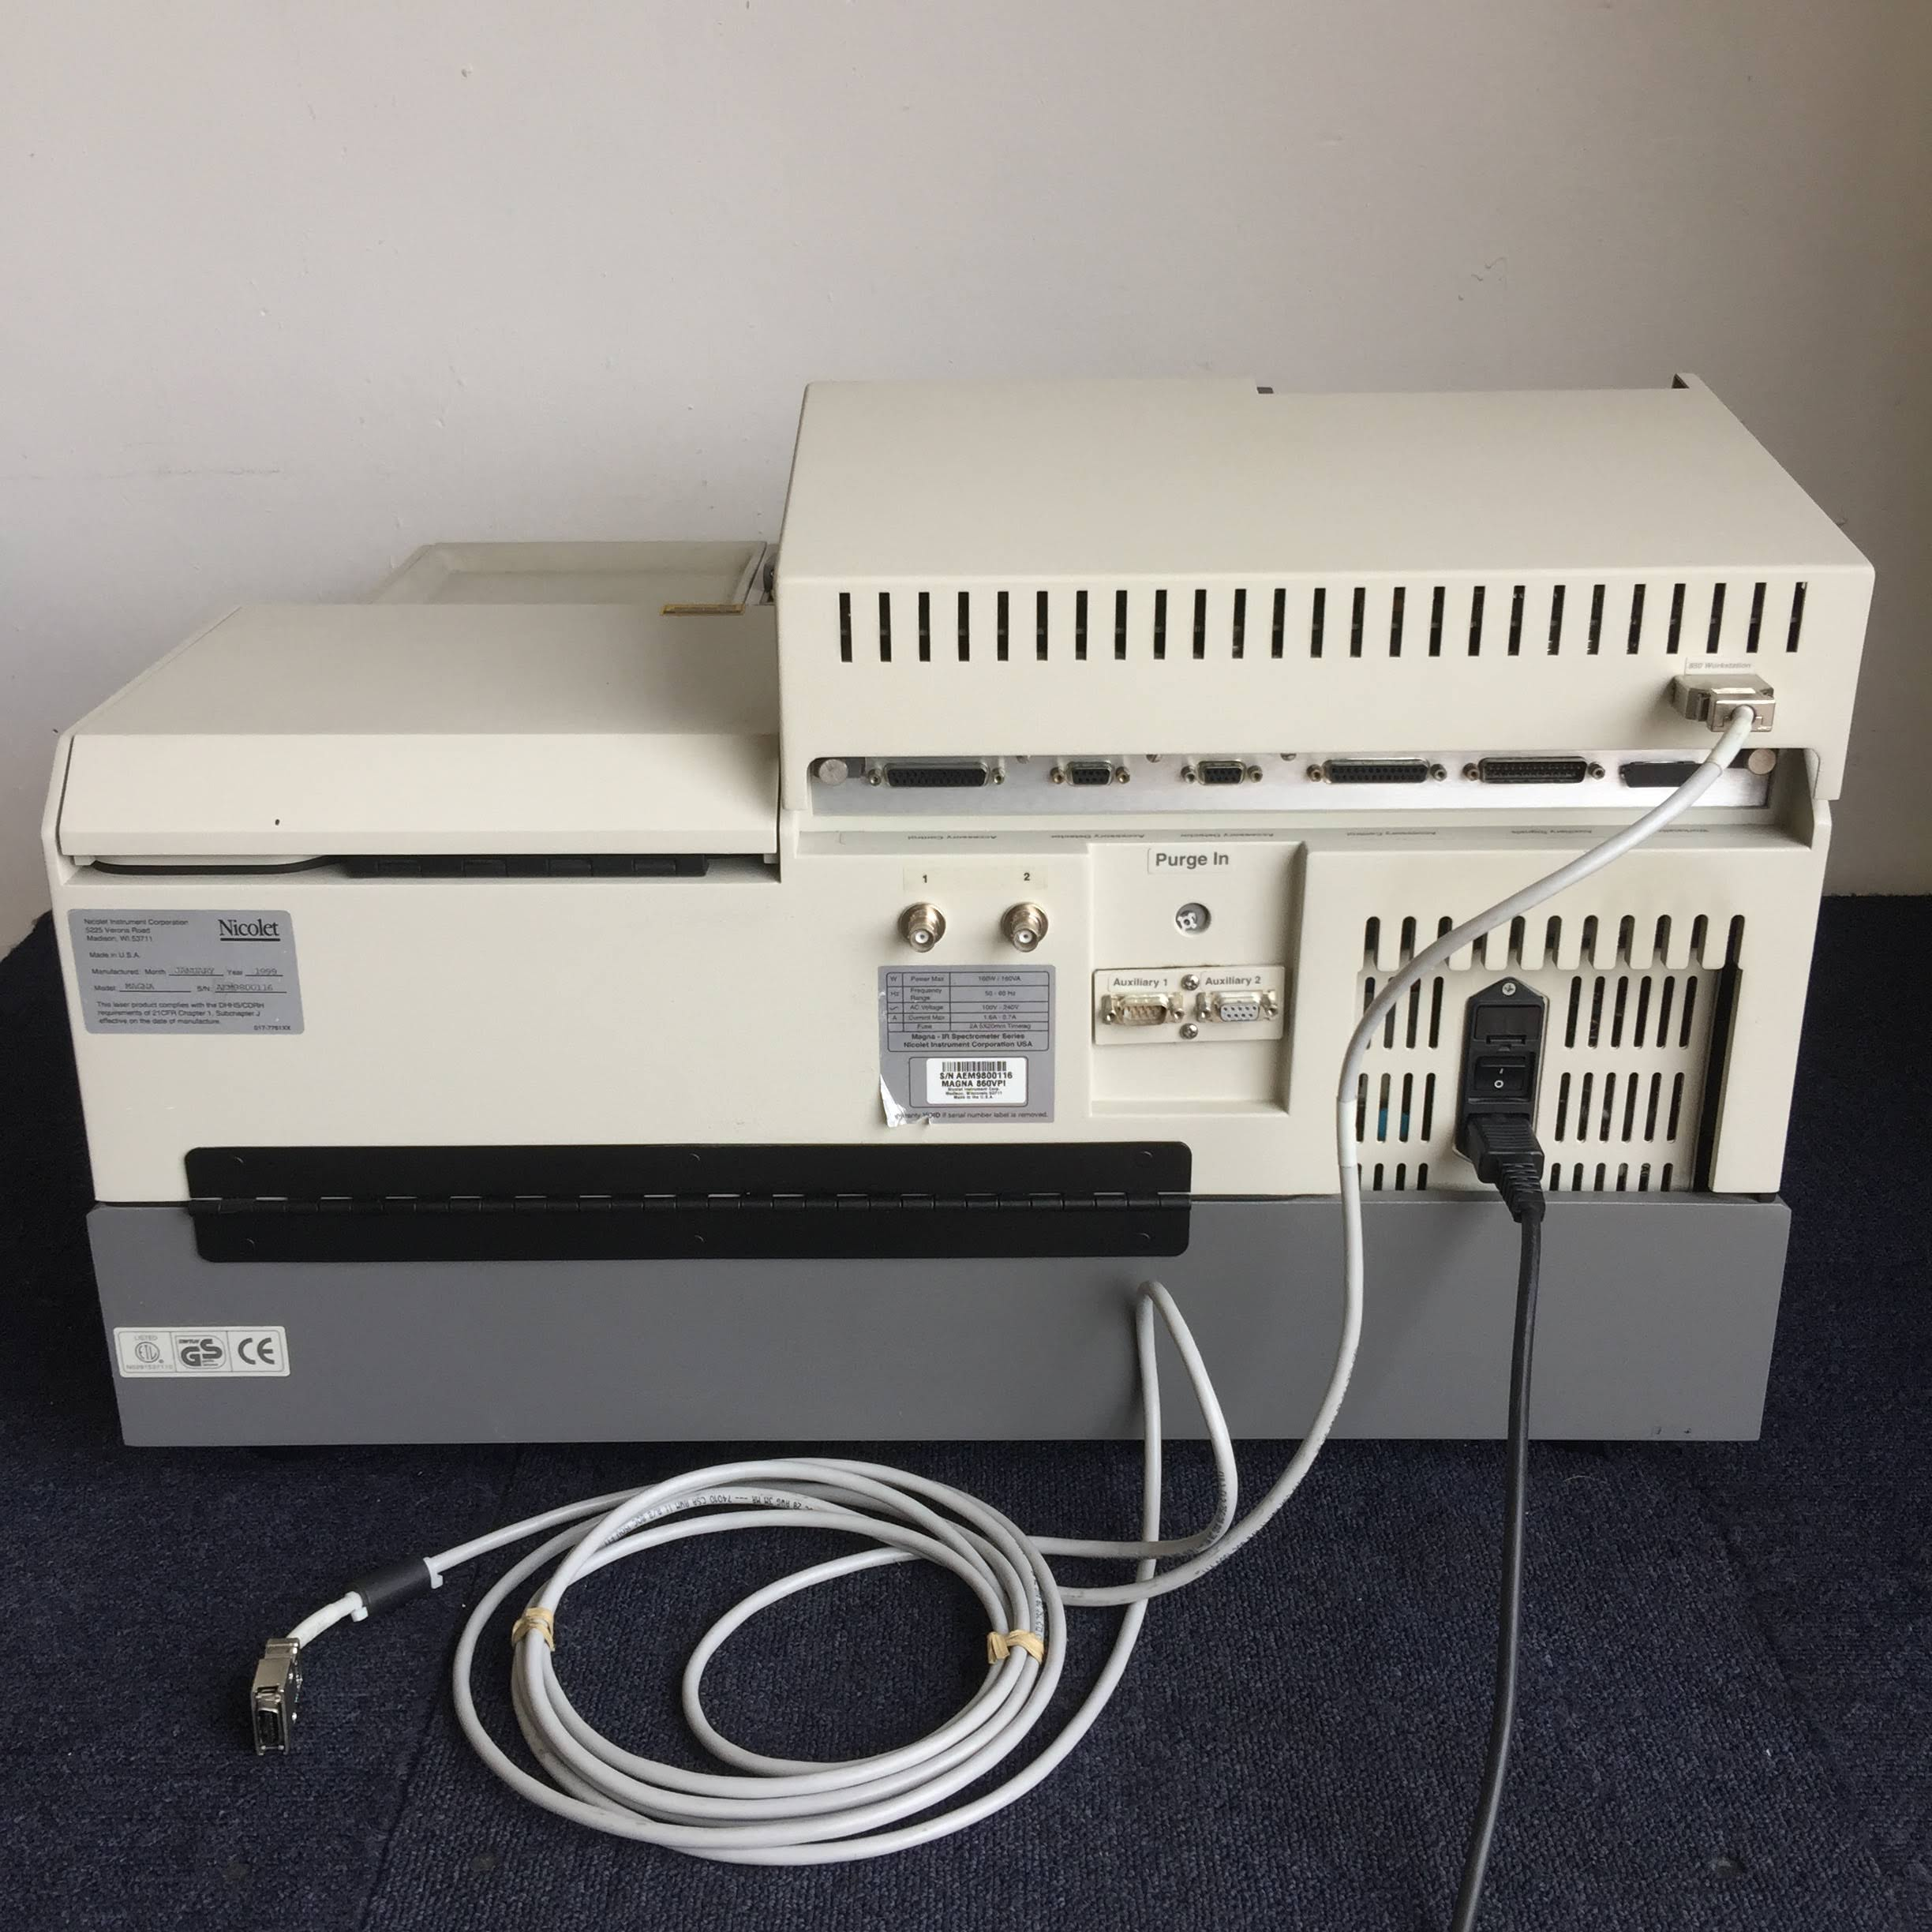 Nicolet Magna 860 FT-IR Spectrophotometer Rear with Wiring